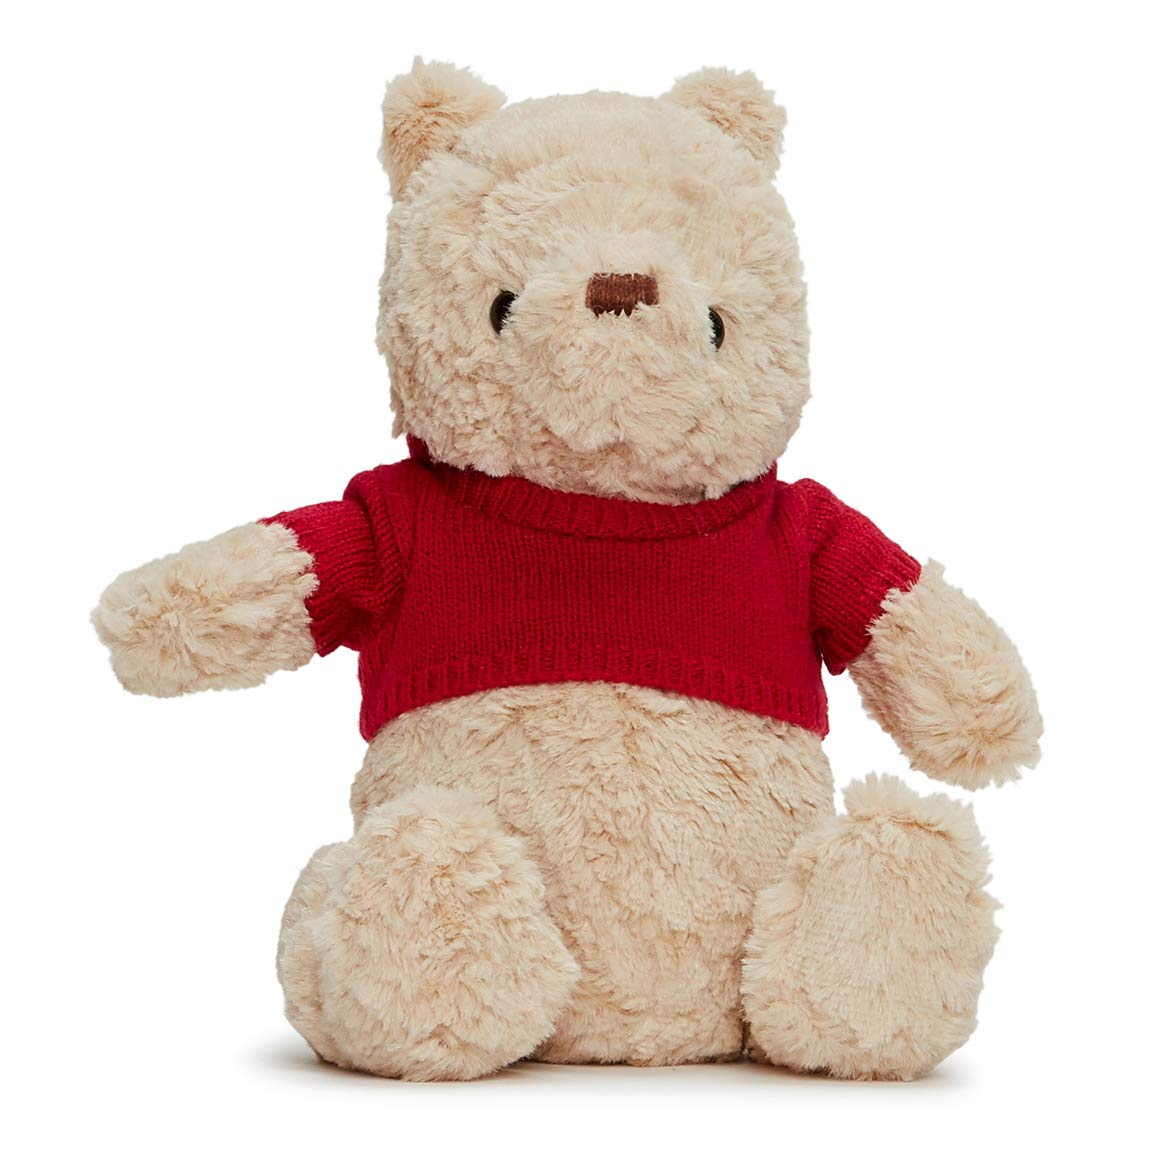 Disney Christopher Robin Collection Winnie The Pooh Soft Toy - 25cm by Posh Paws